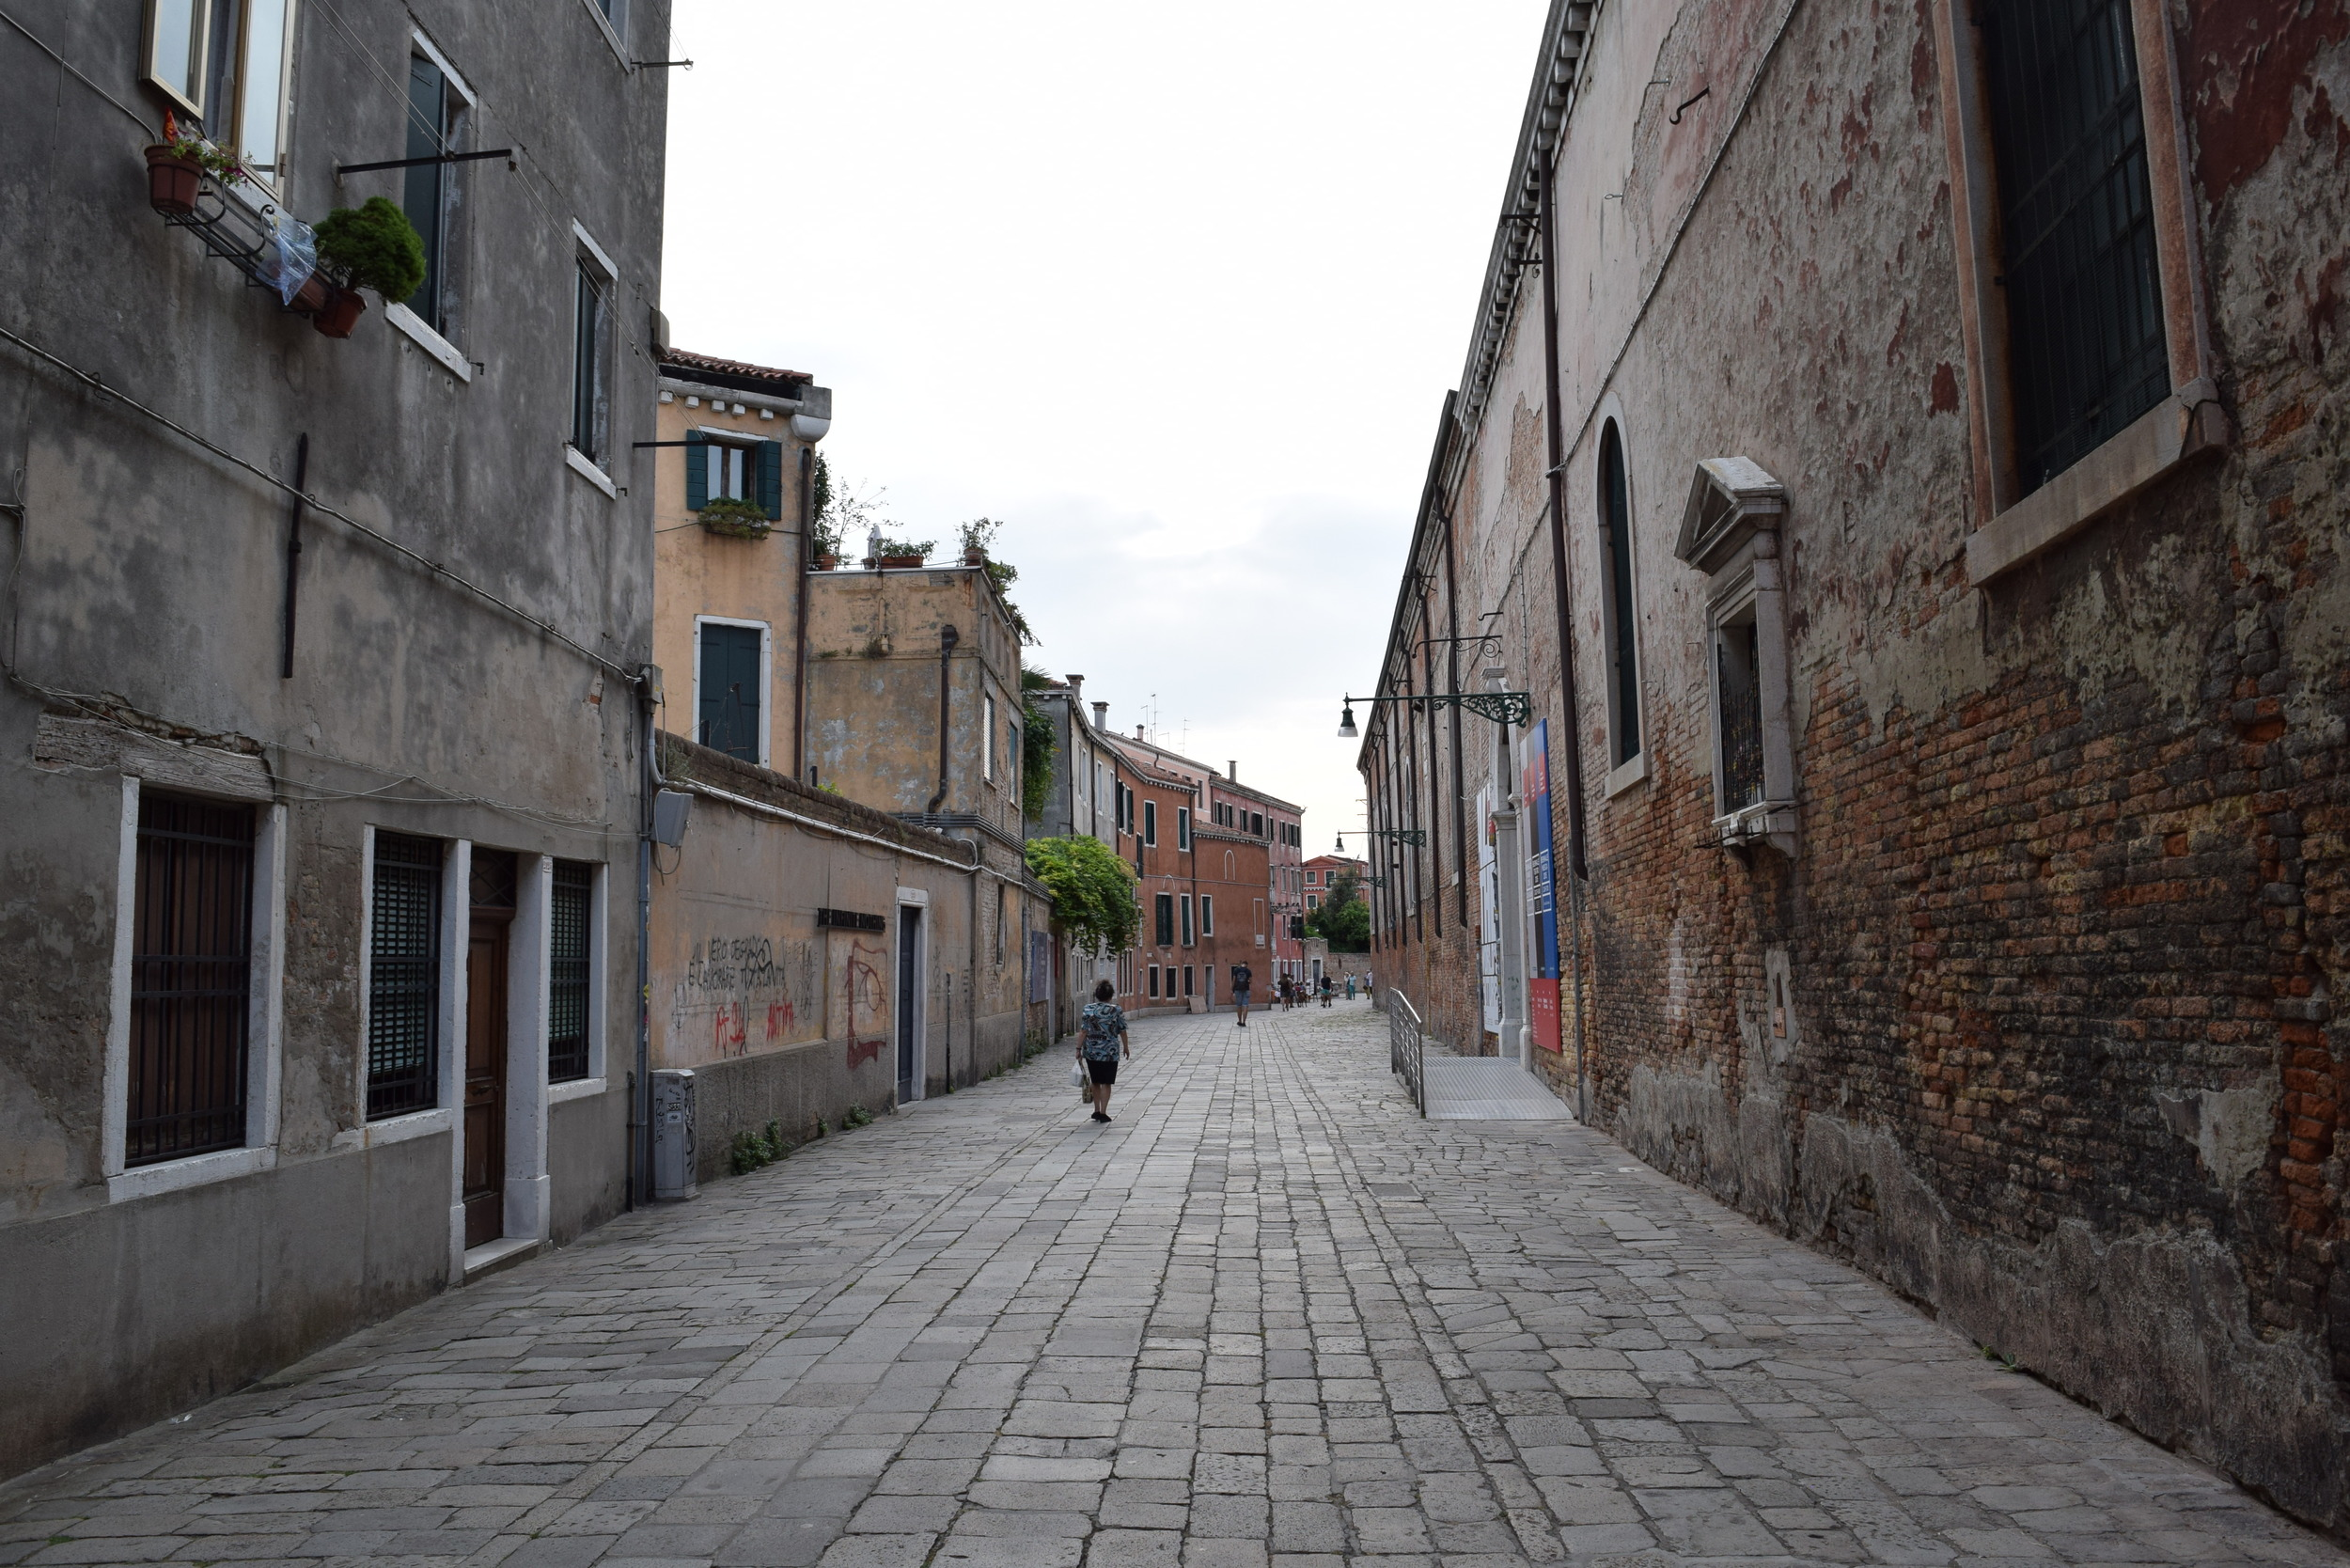 A tranquil street devoid of both canals and crowds